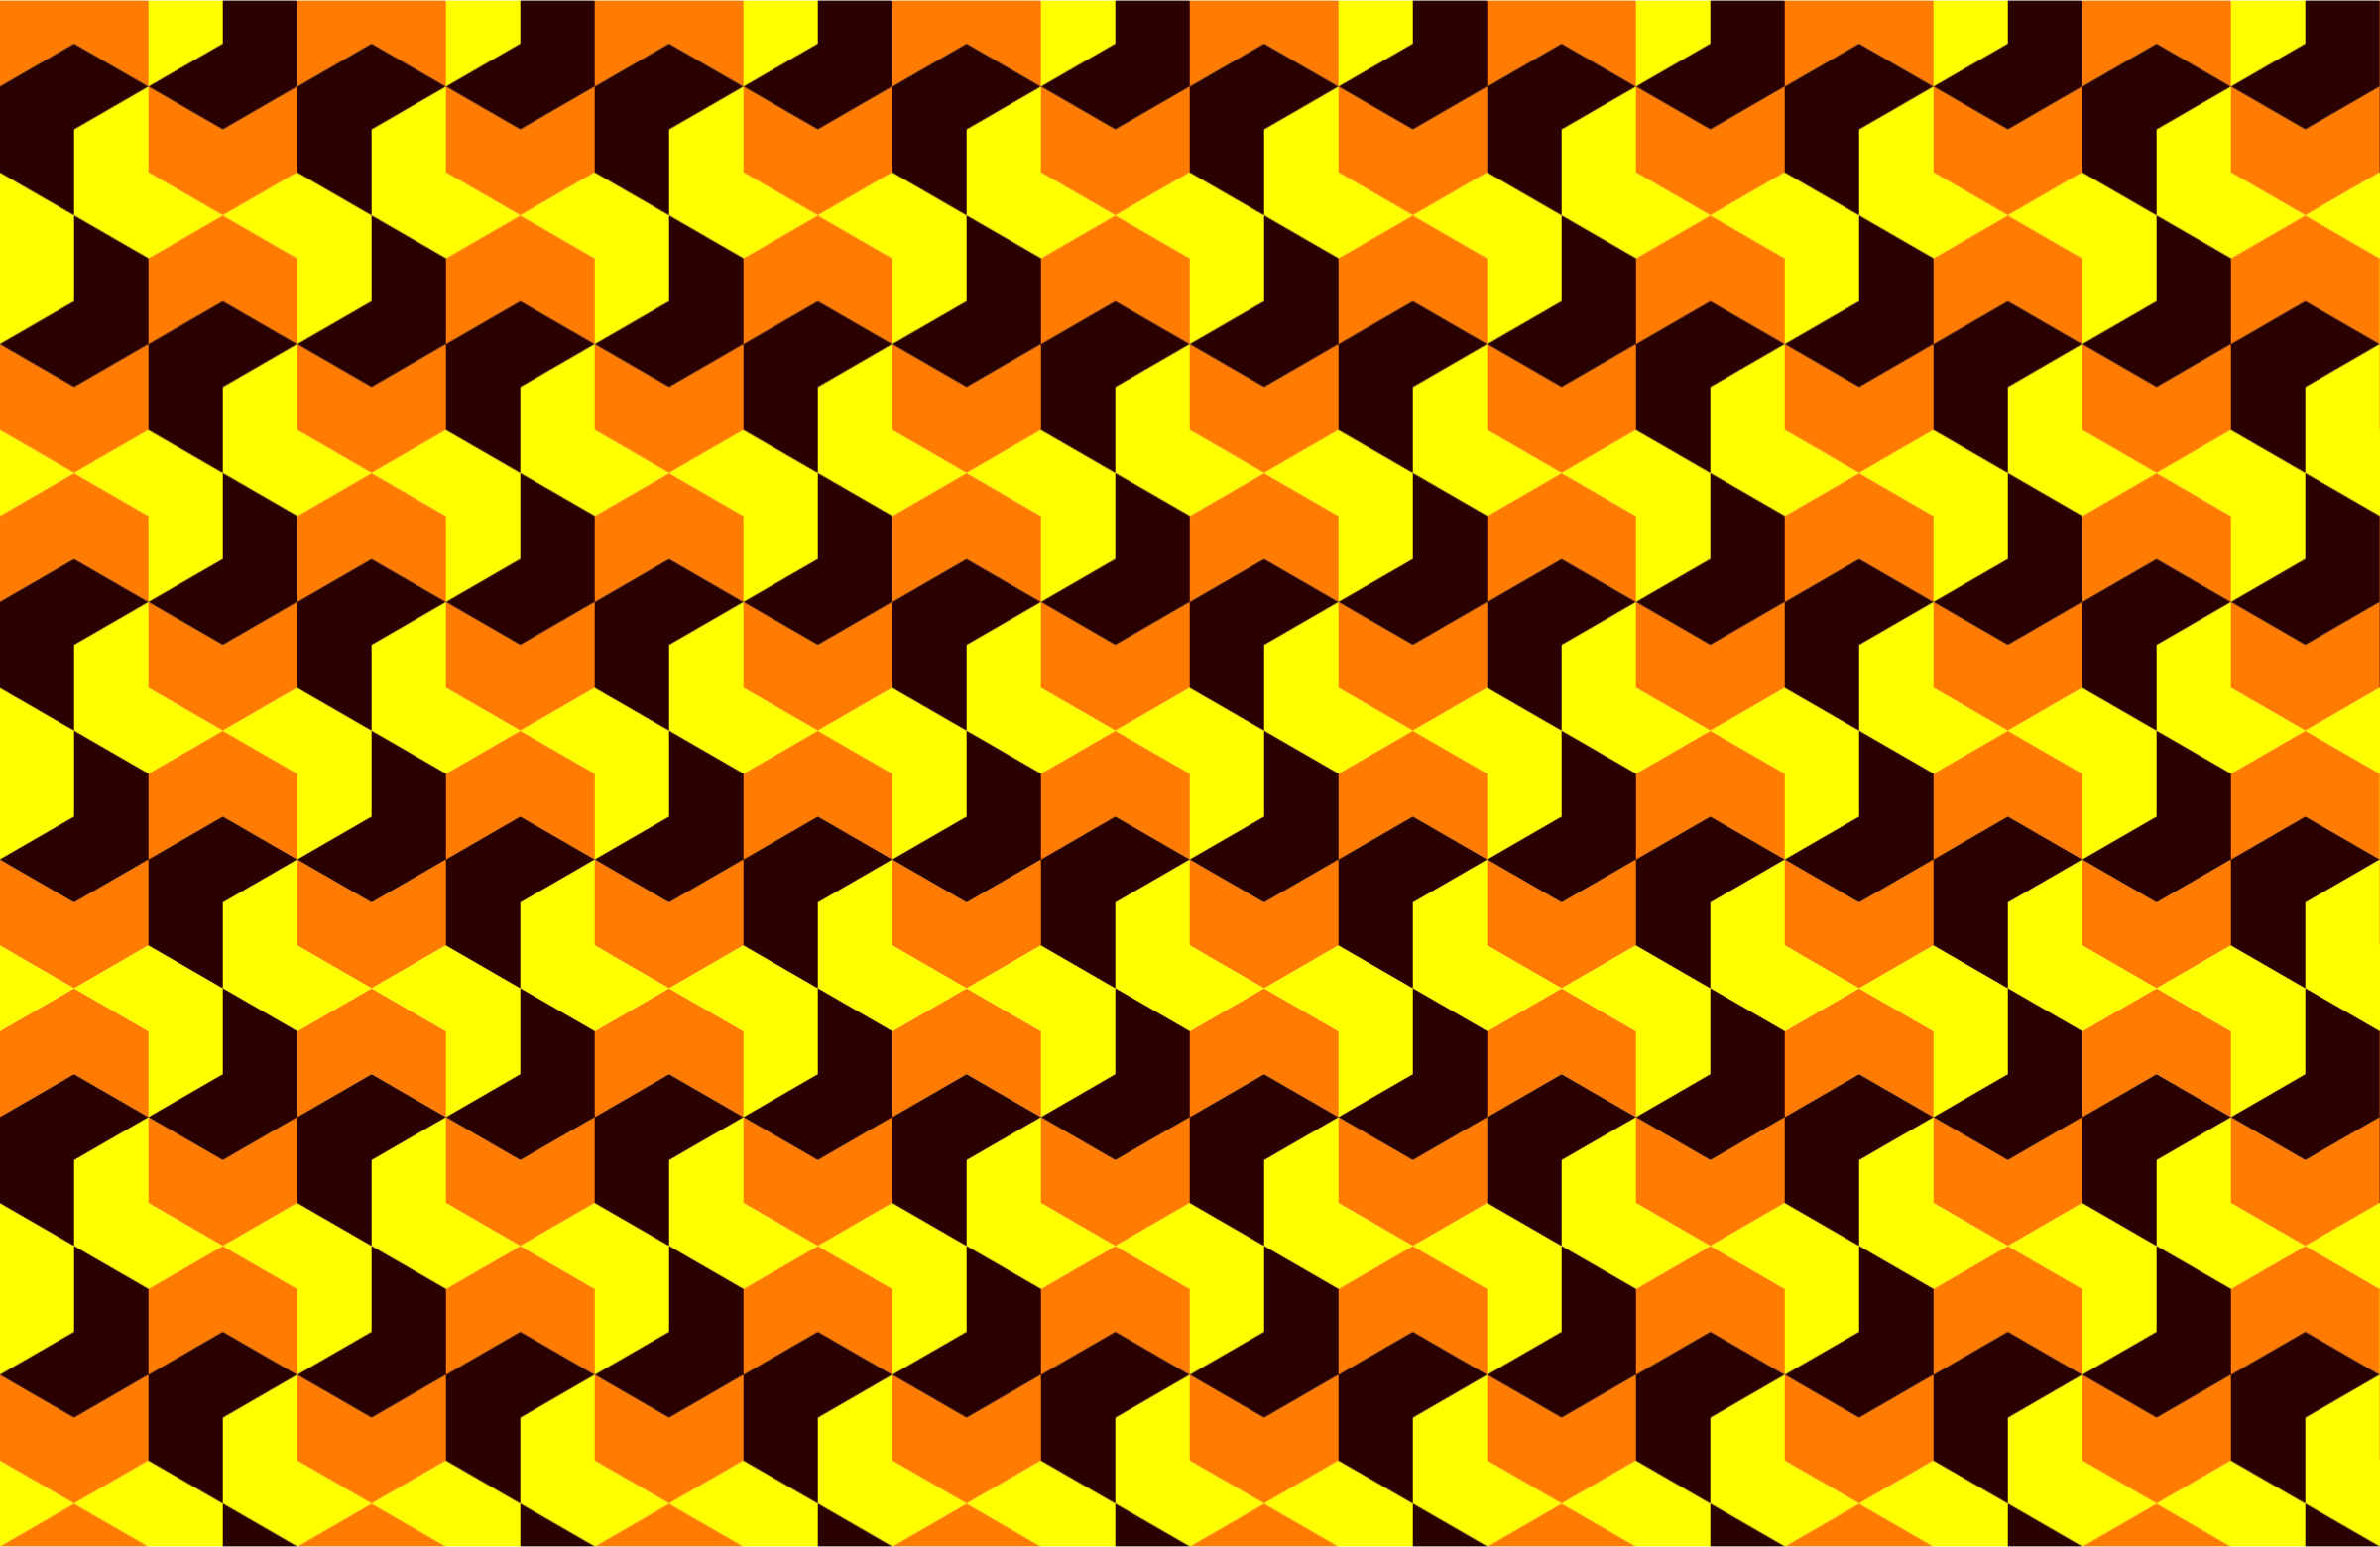 Tessellation 13 by Firkin